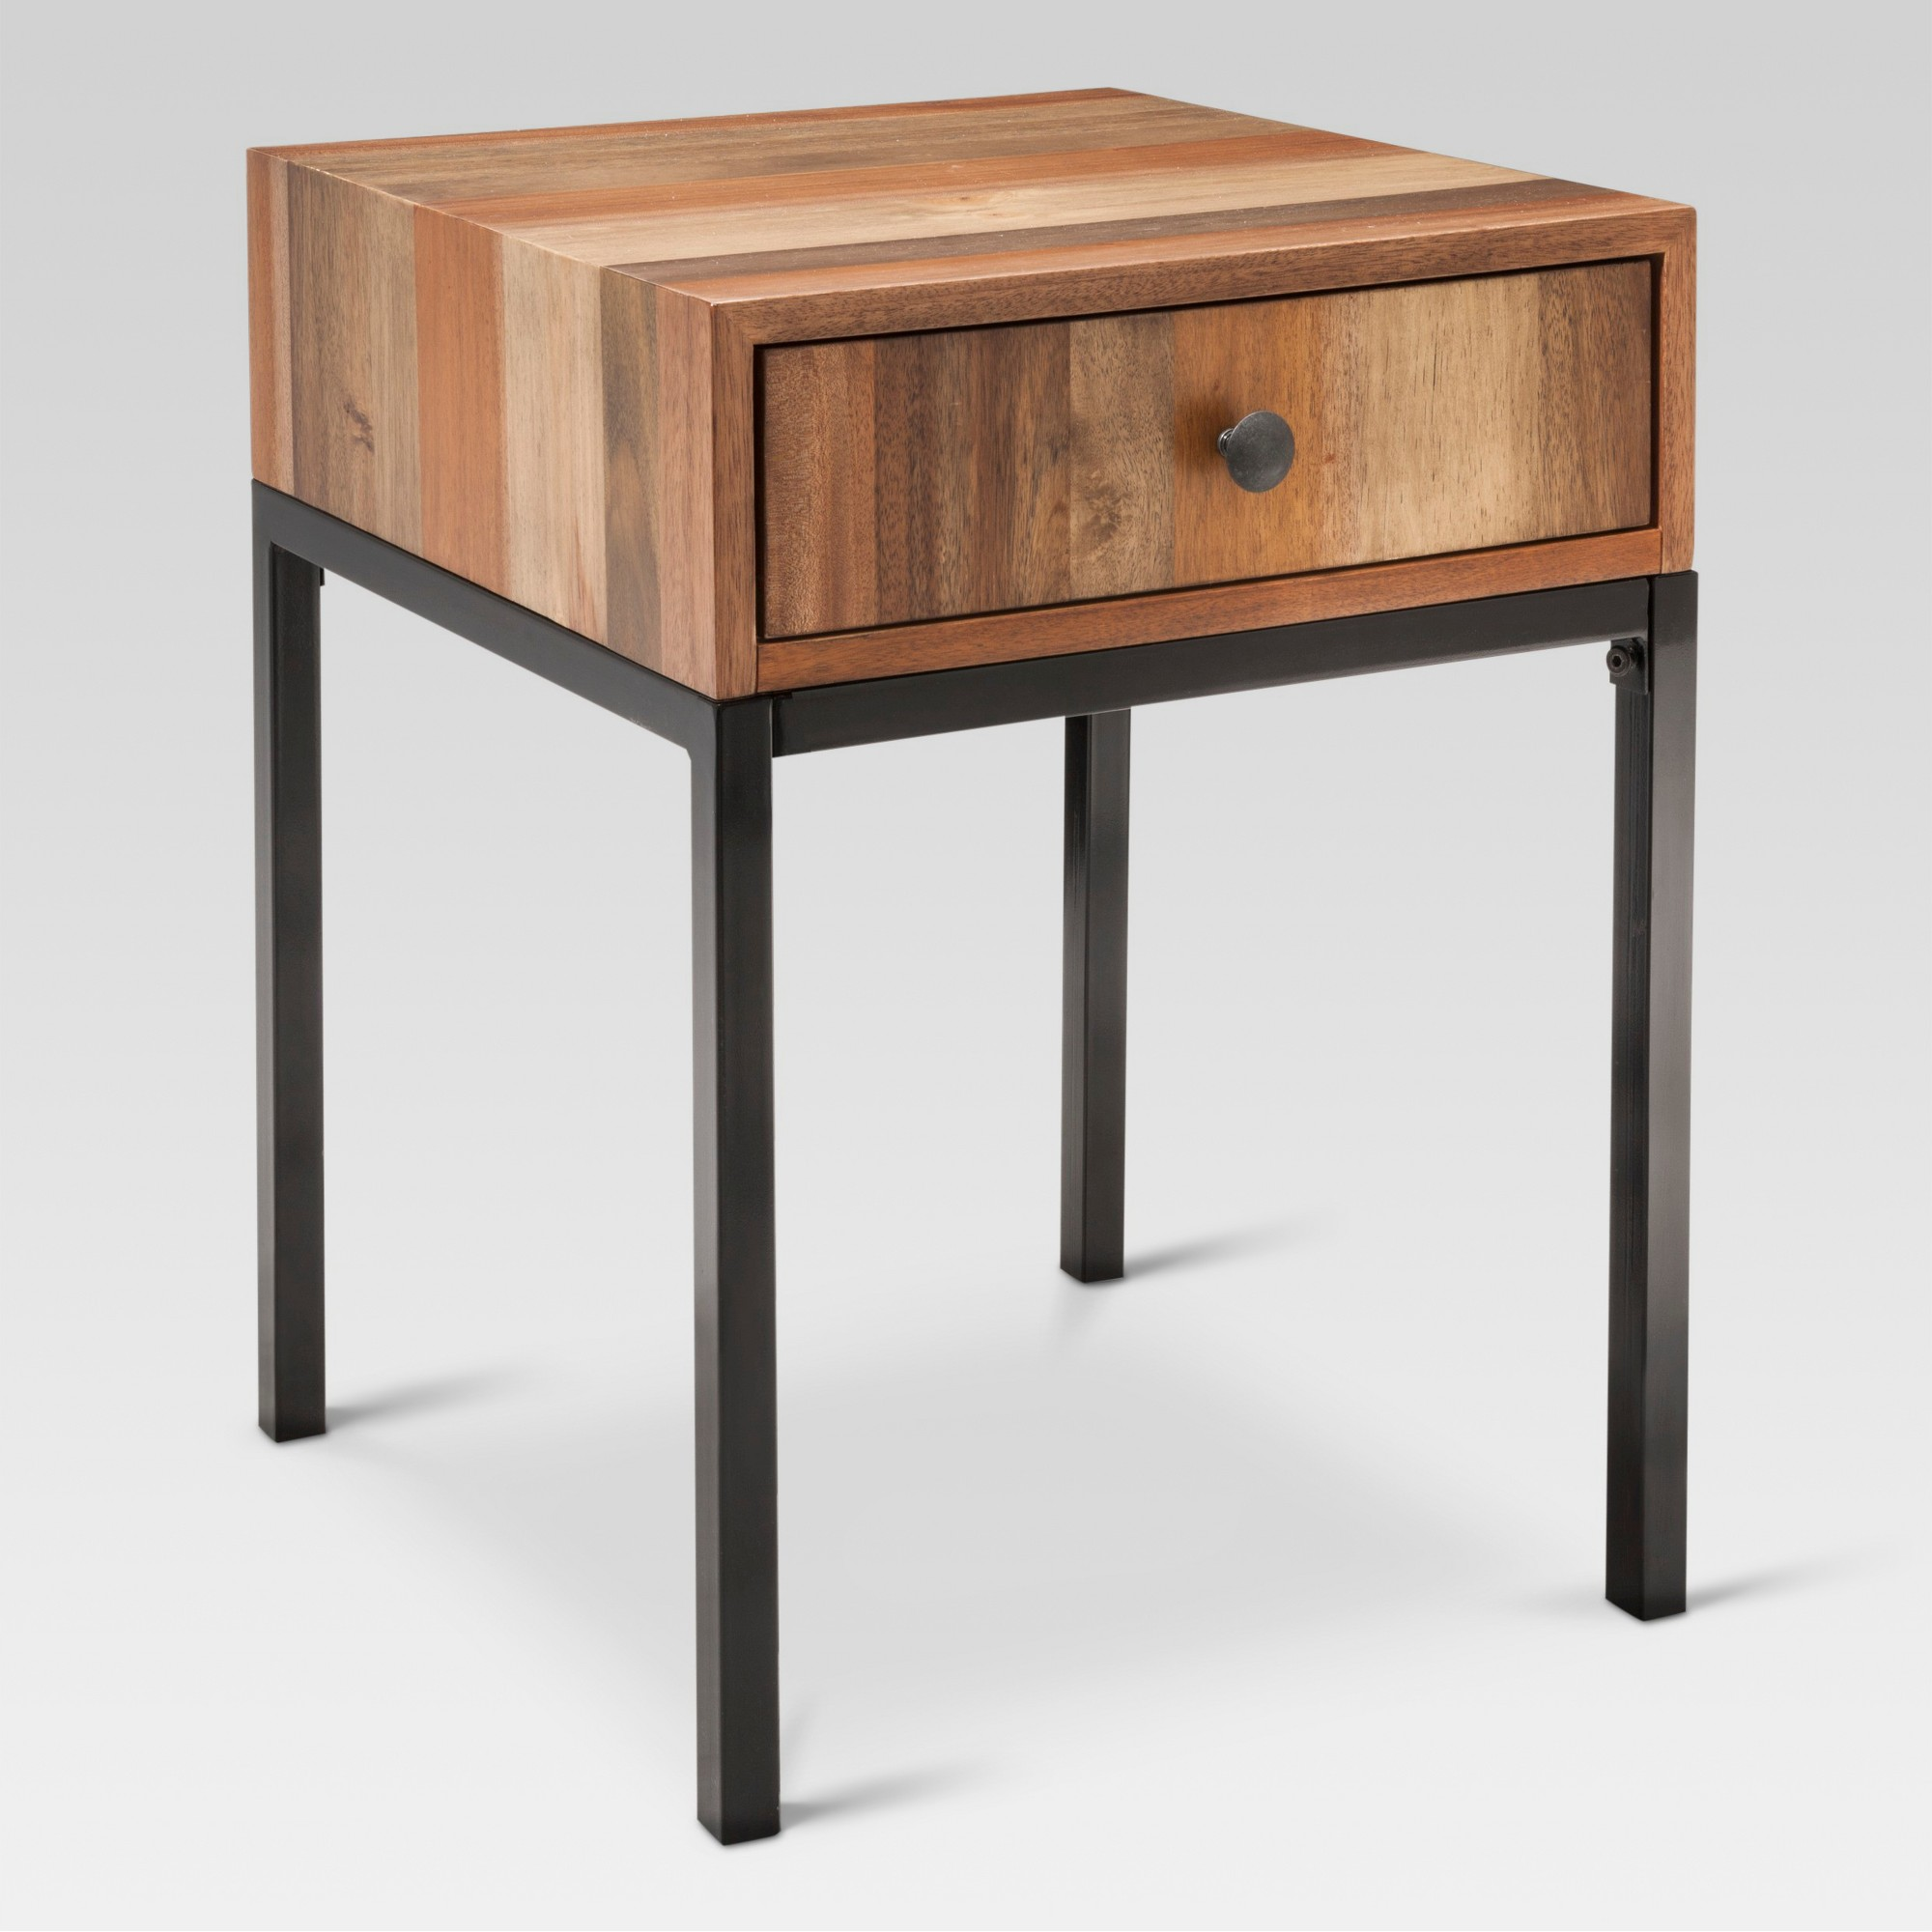 hernwood mixed material side table brown threshold products triller accent target amish made end tables modern drop leaf for small spaces concrete round and benches outdoor